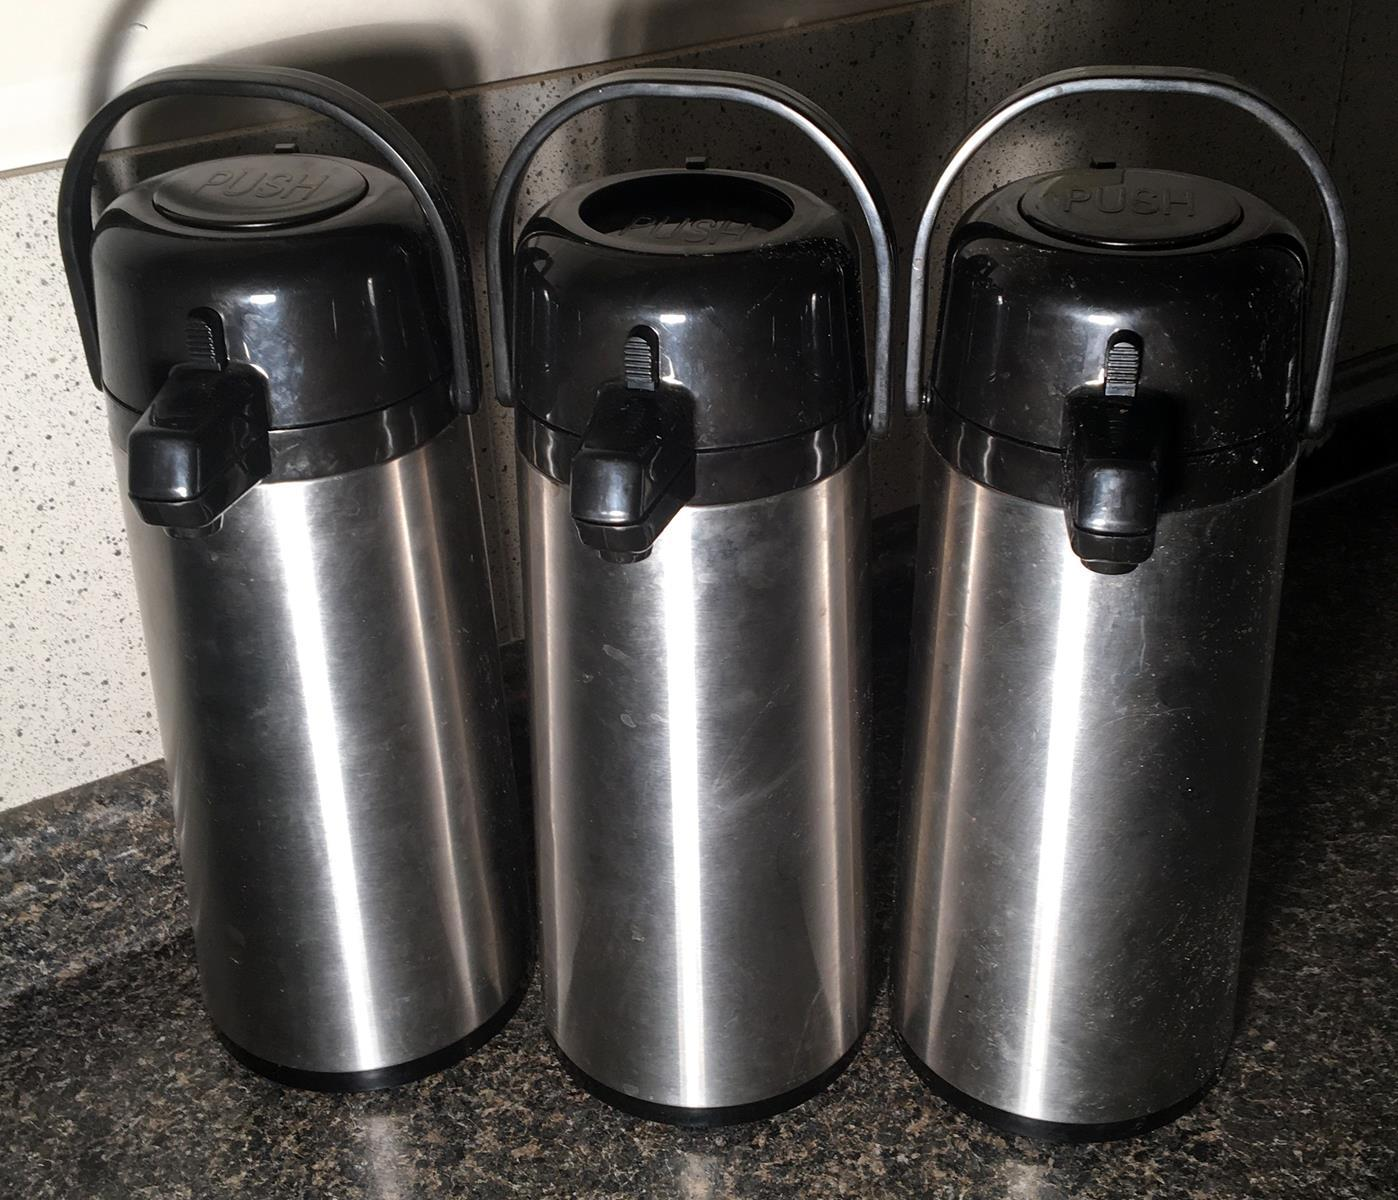 Lot of 3 Service Ideas Portable Coffee Urns